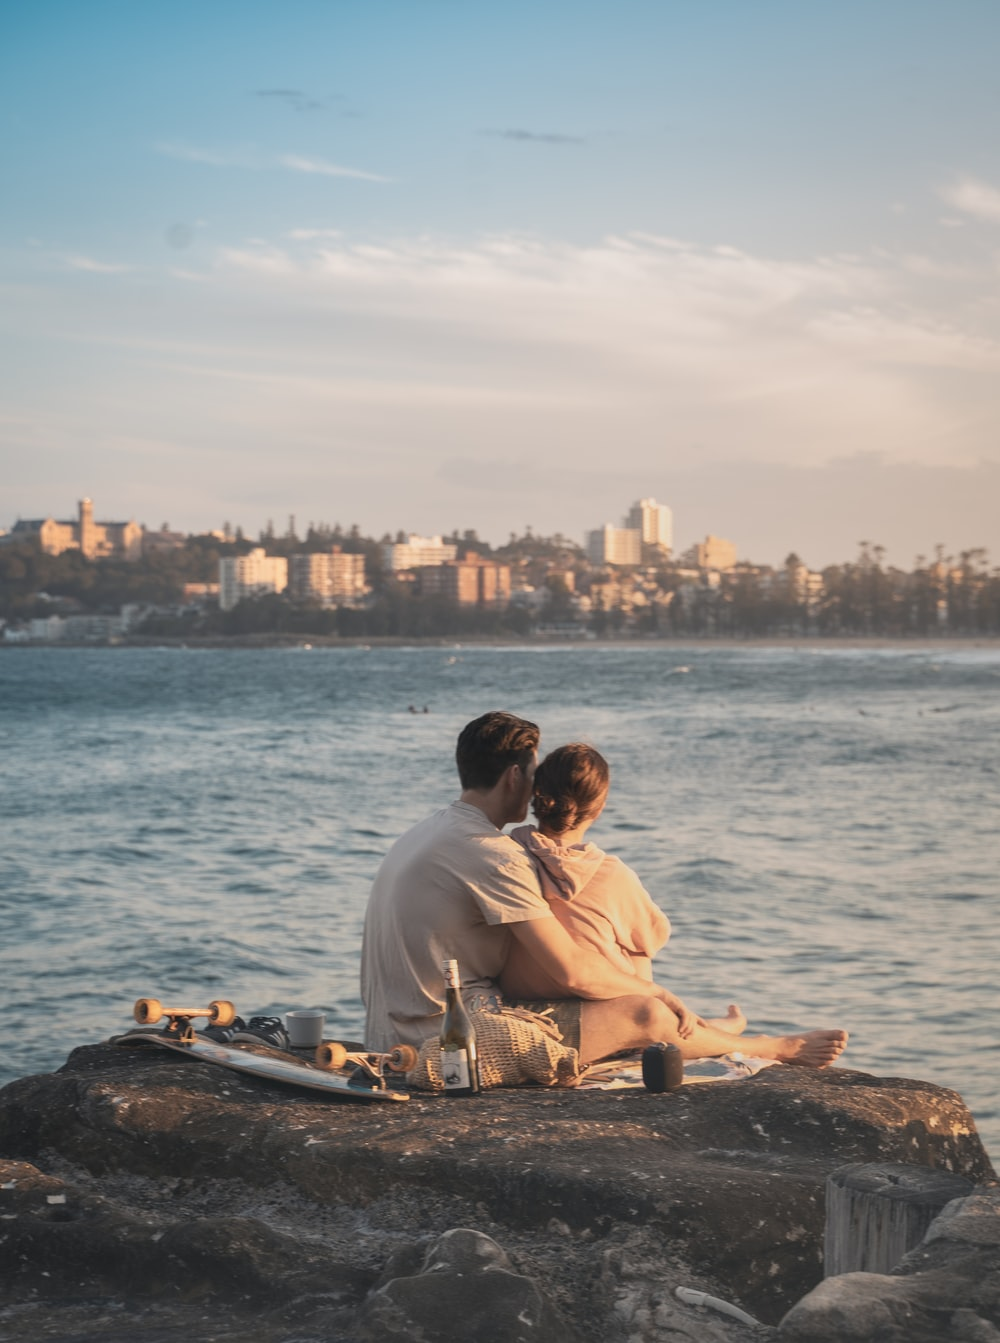 man and woman sitting on rock near sea during daytime